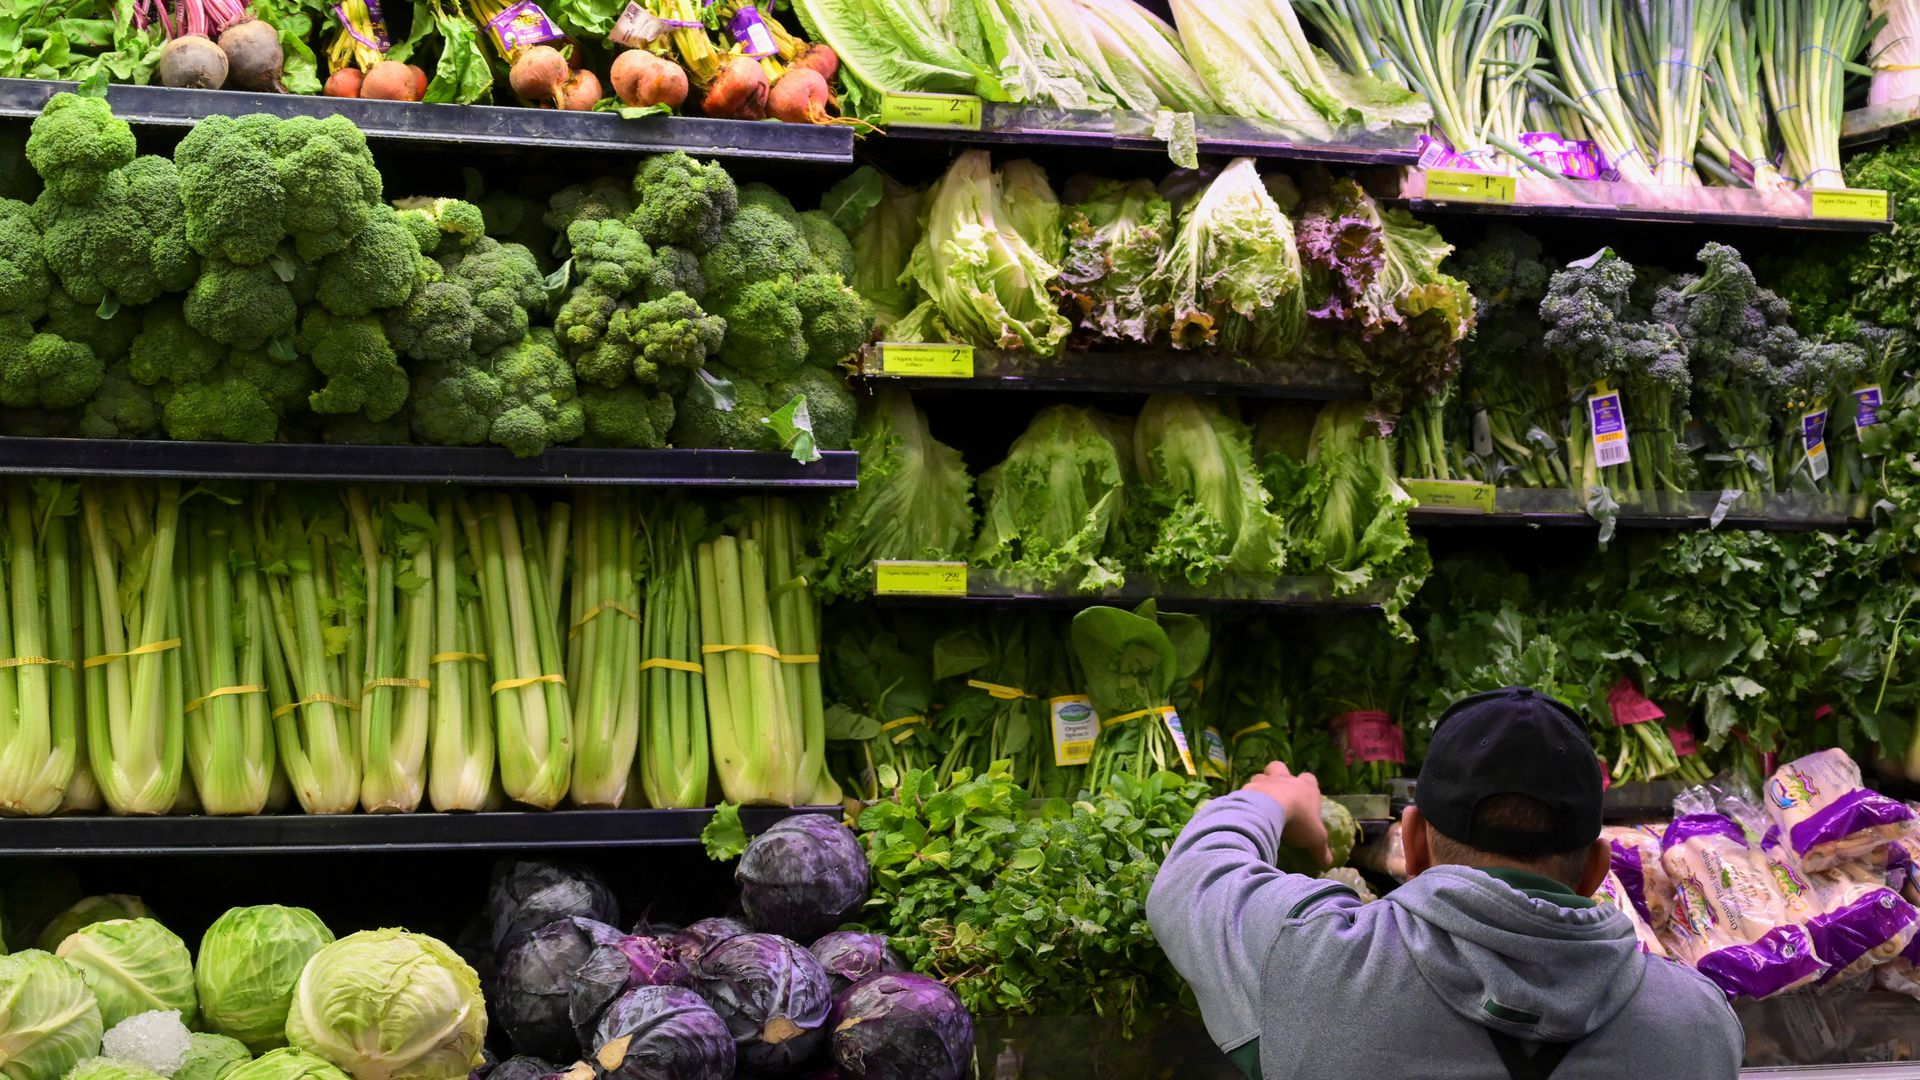 Romaine lettuce and vegetables displayed in store.